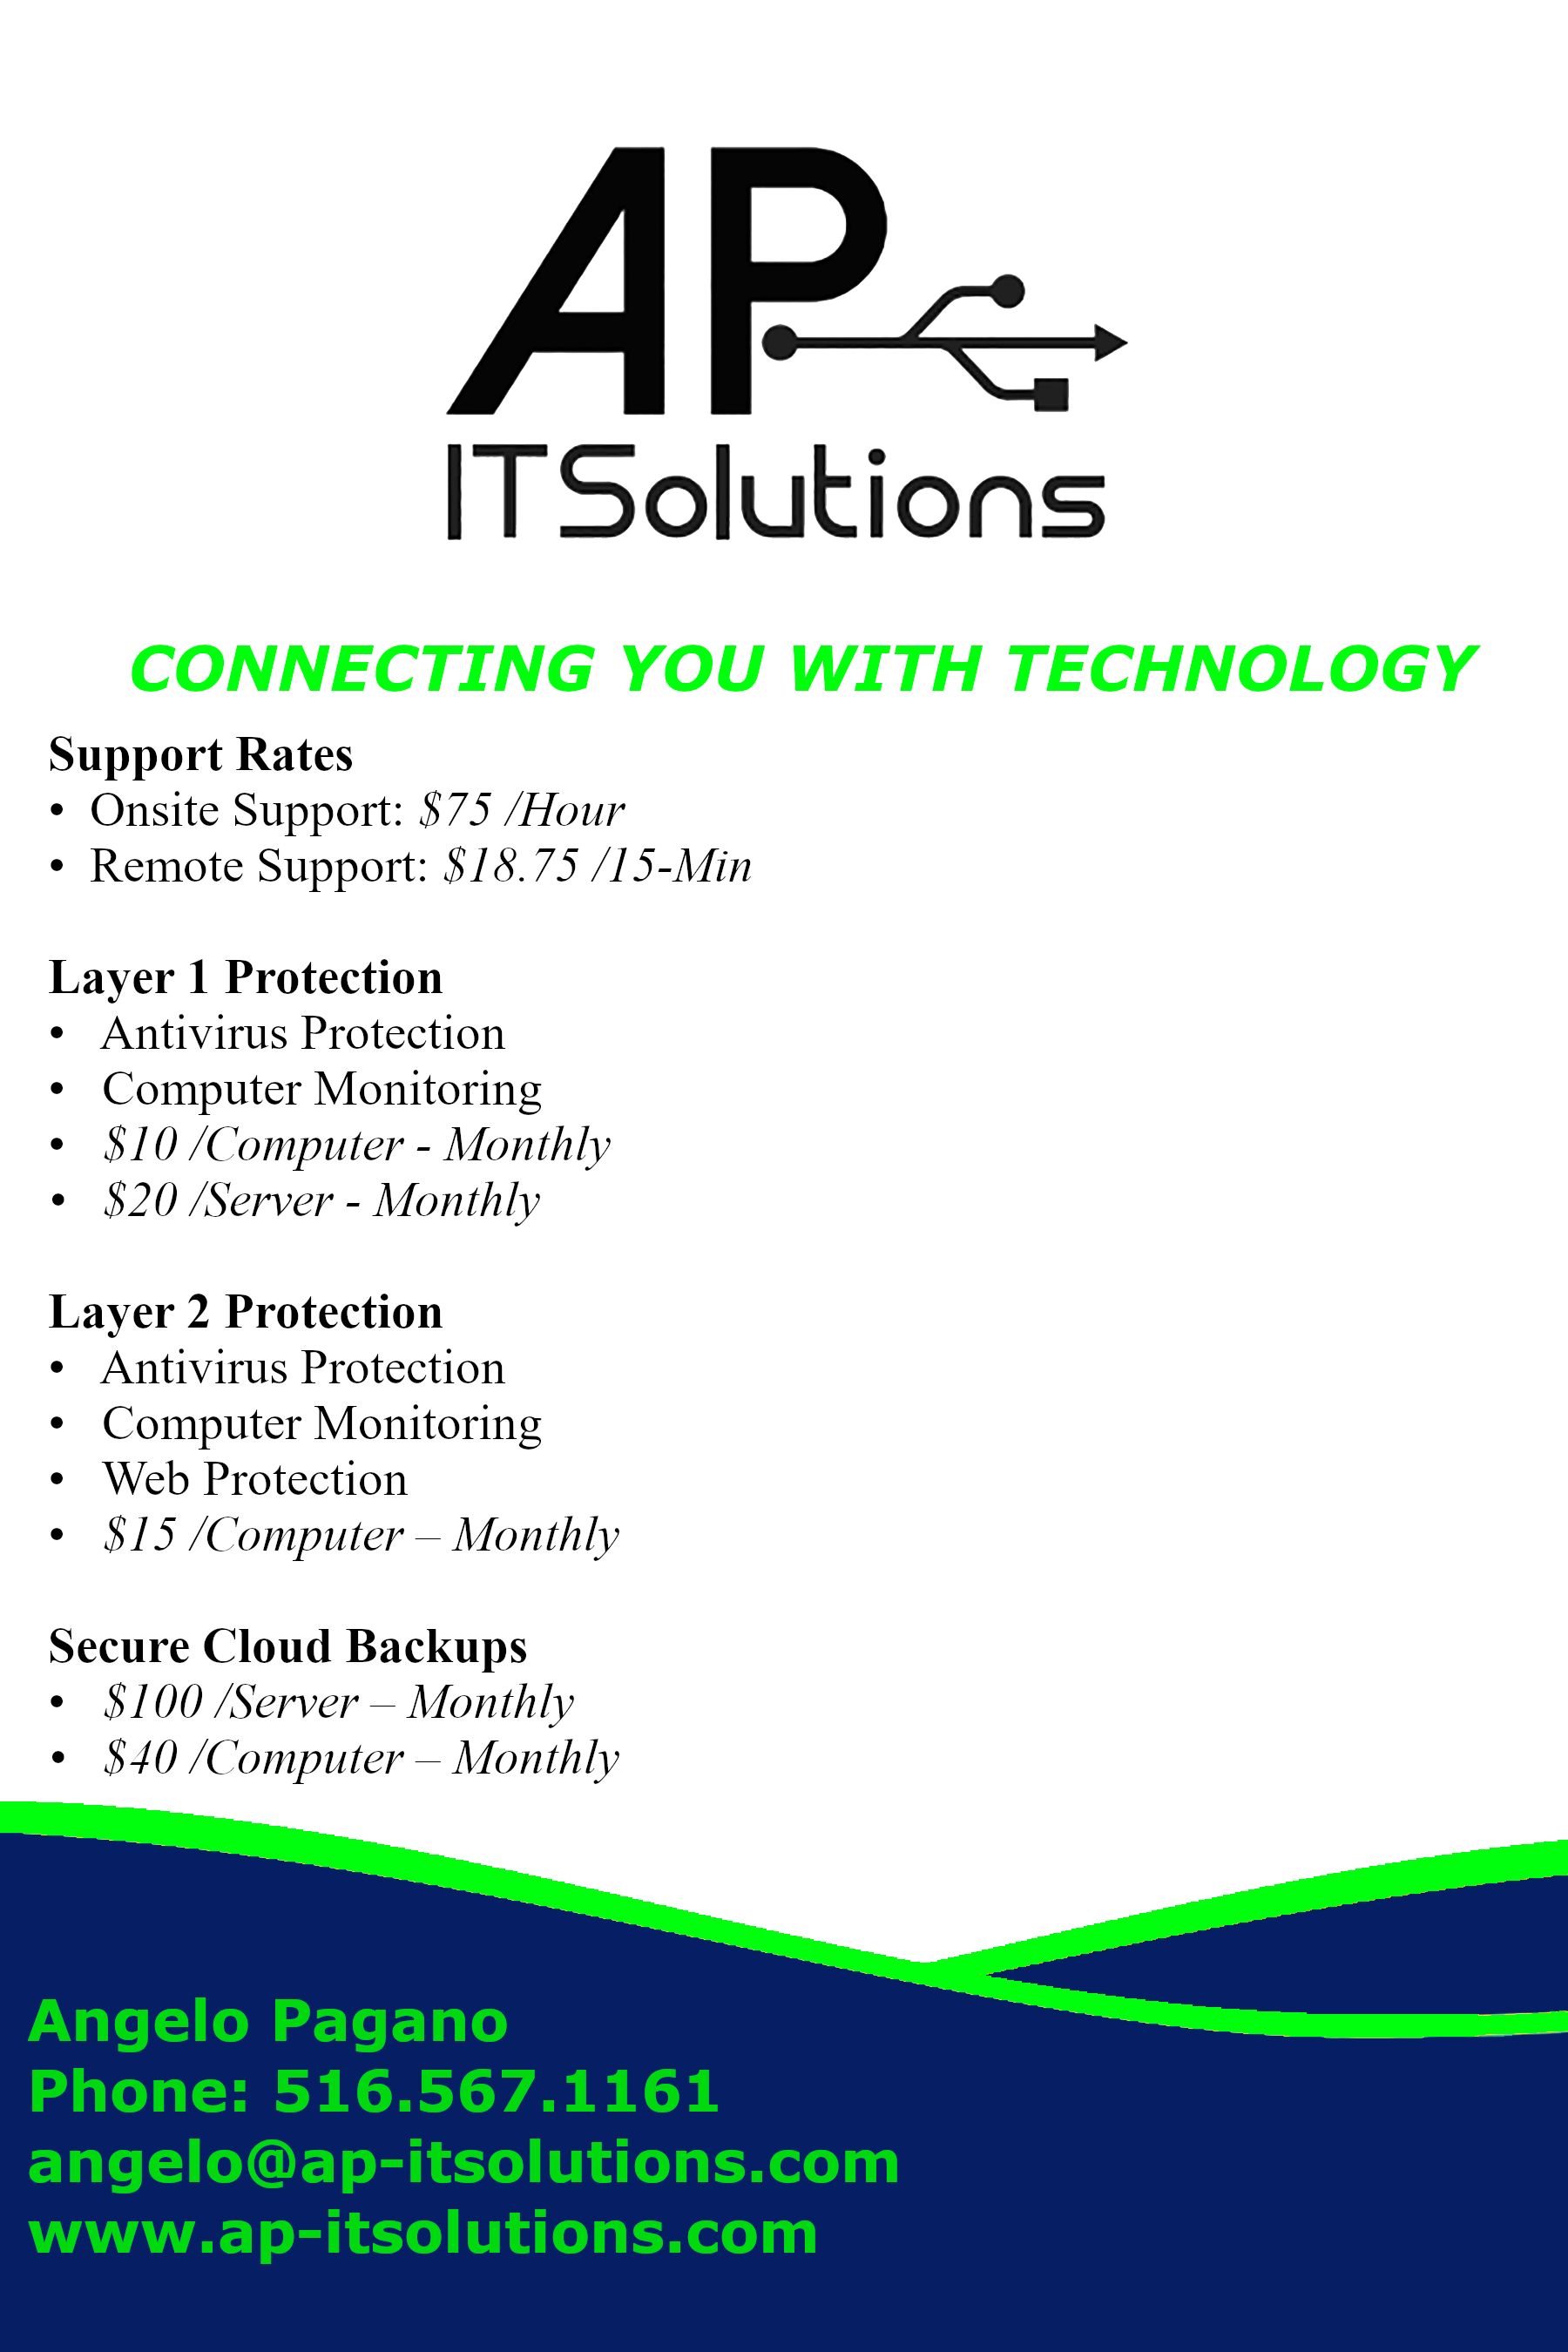 APITSOLUTIONS.png